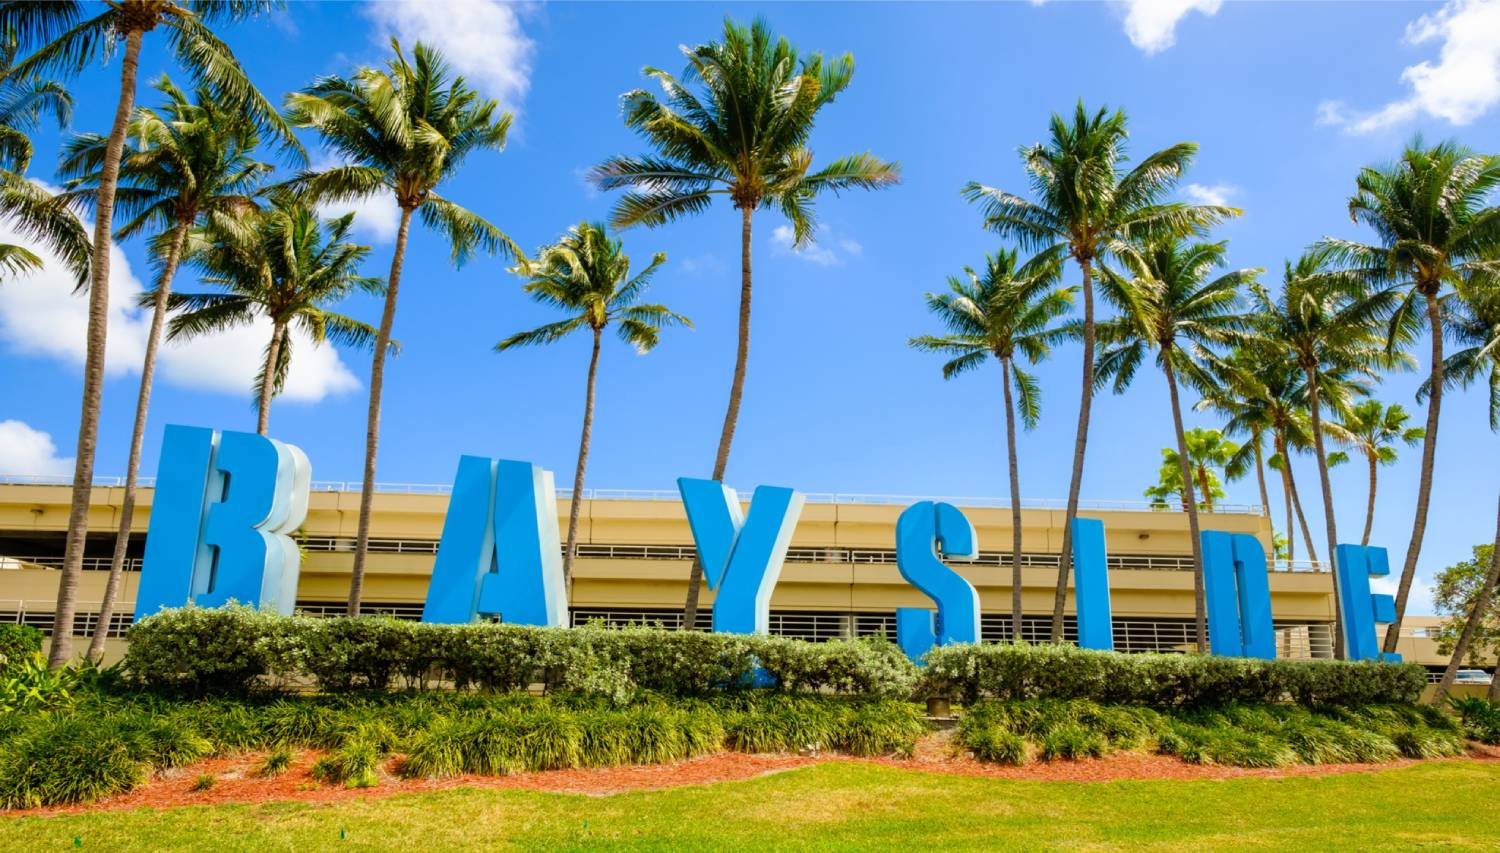 Bayside Marketplace - Things To Do In Miami